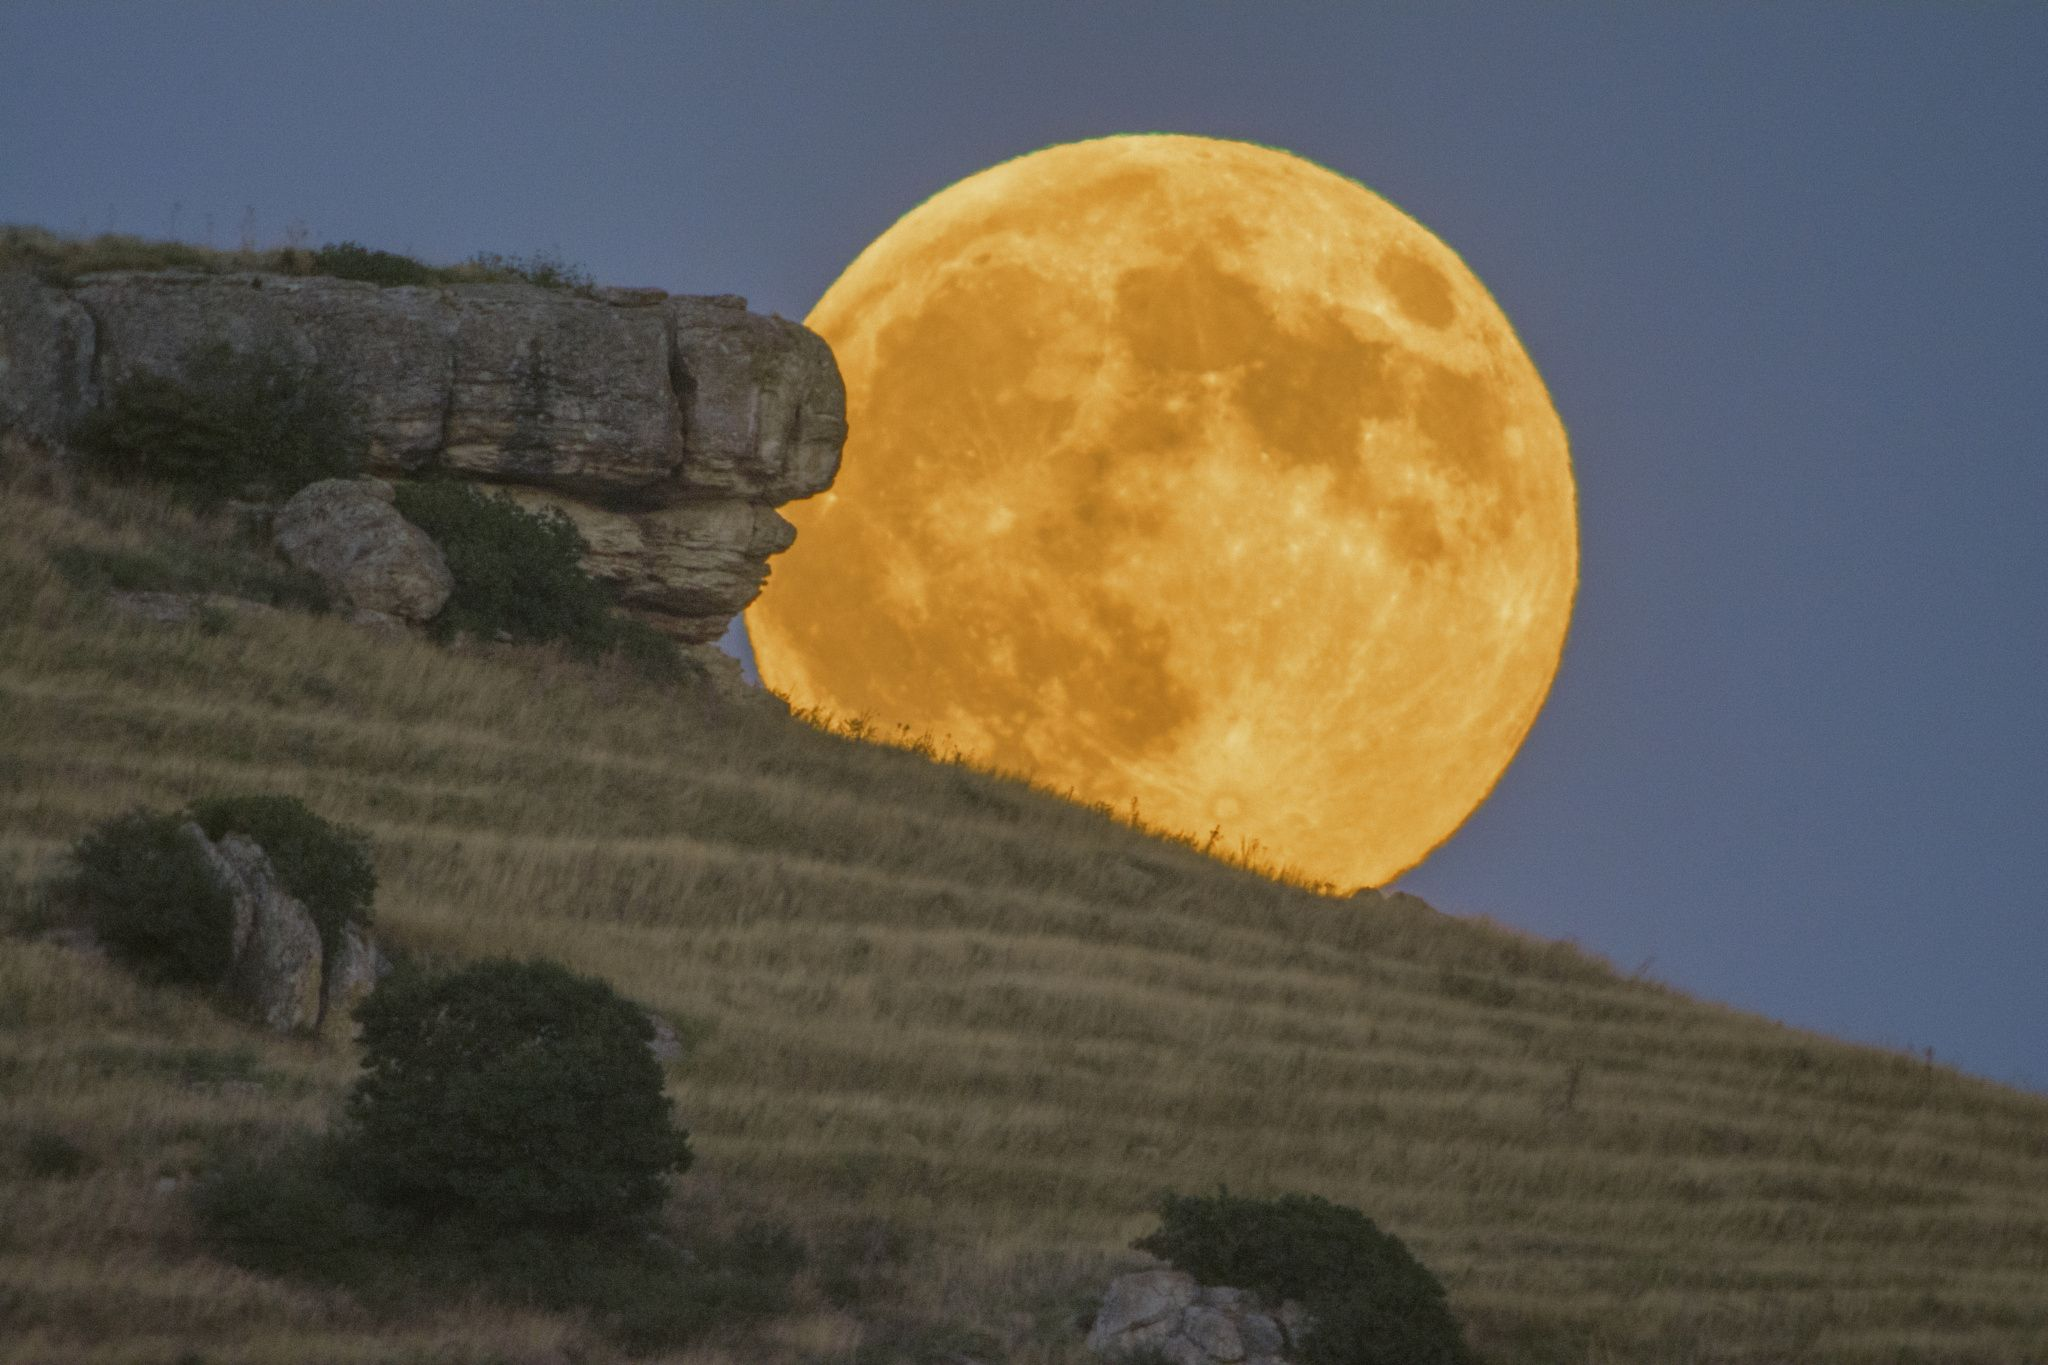 The rocks on the left are seem to create a face looking at the face of the full Moon as its Autumn is looking face to face with Summer. Excellent weather conditions during this imaging session and a magnificent full moon is rising over the Megalithic monument of Horigio - Northern Greece.